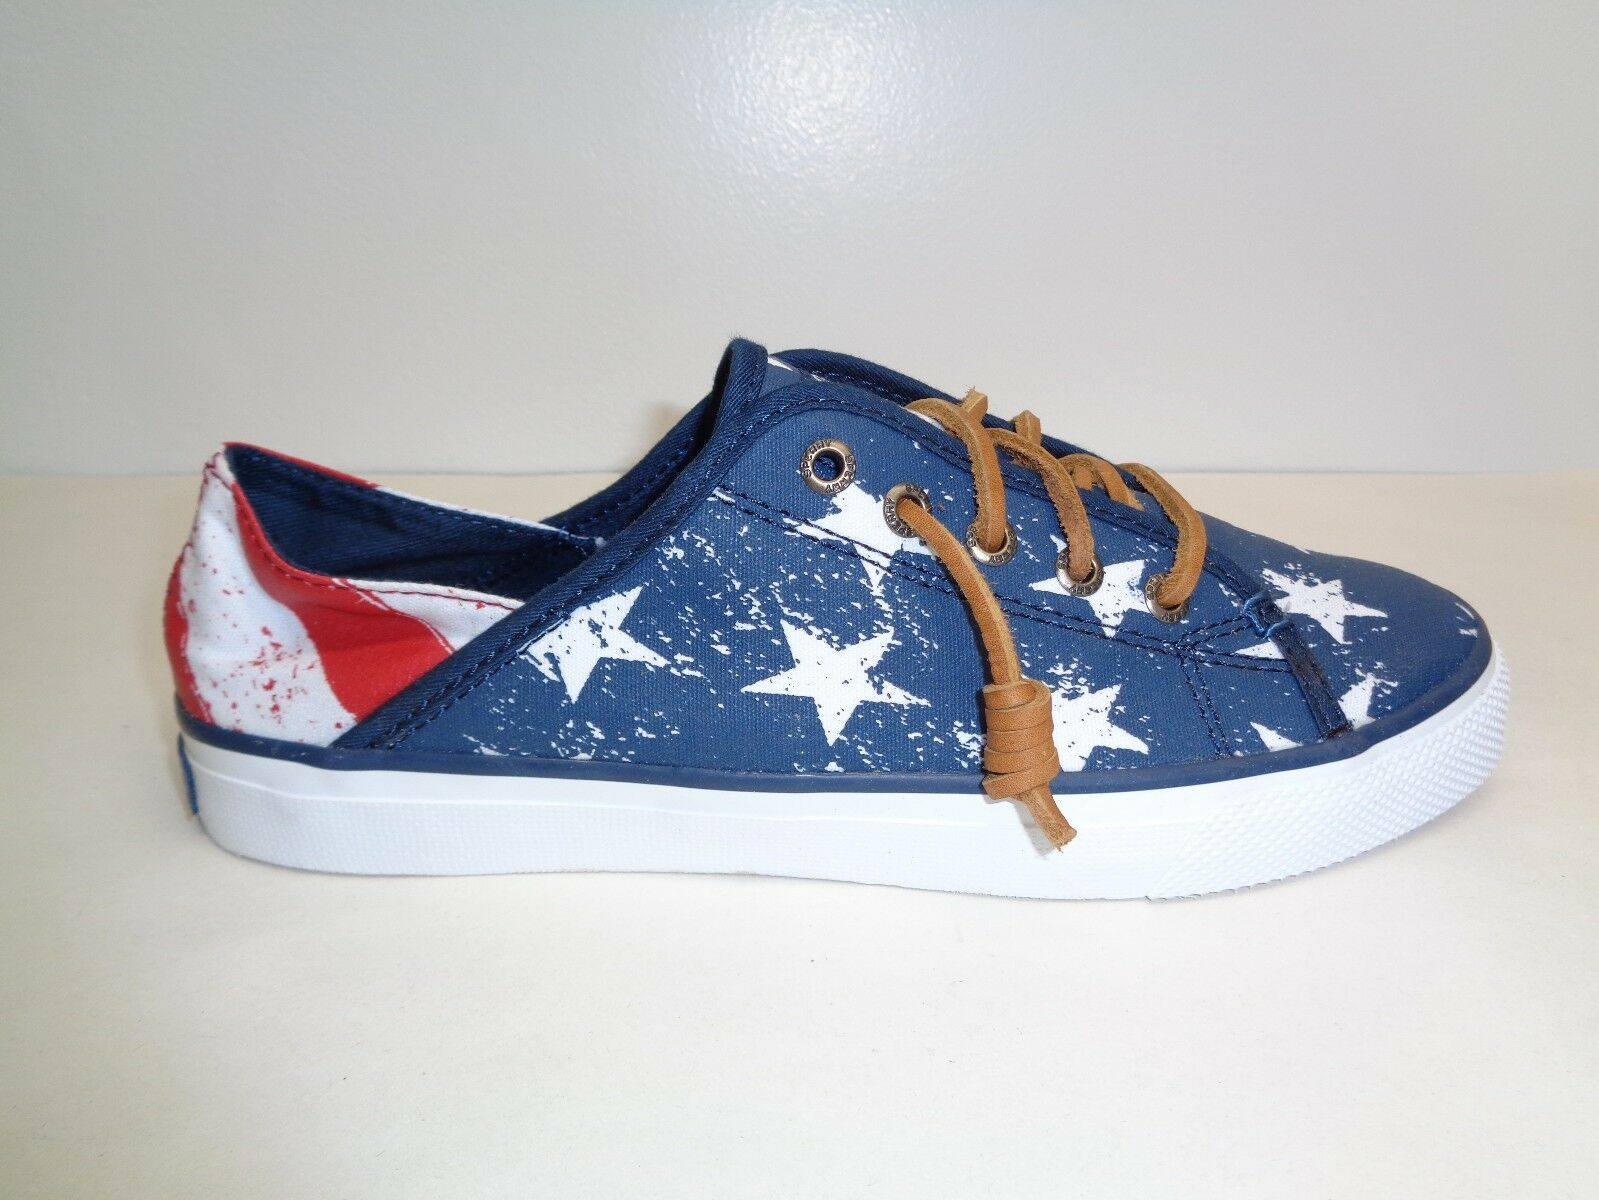 Sperry Size 9 SEACOAST ISLE STARS AND STRIPES Fashion Sneakers New Womens Shoes